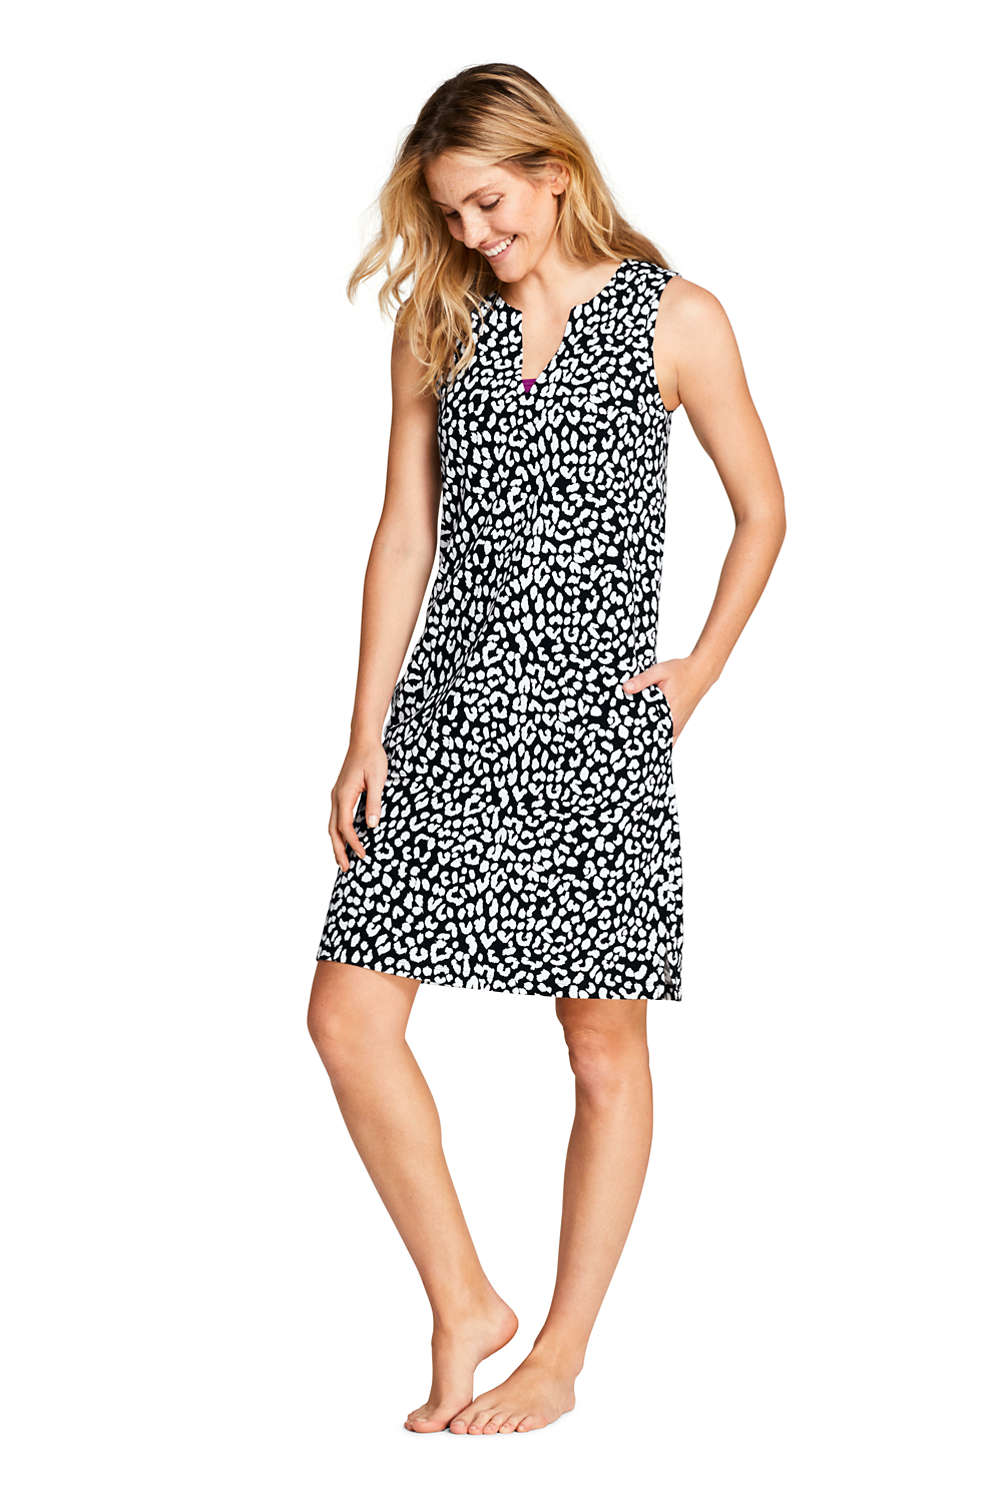 fe1378af31 Women s Petite Cotton Jersey Sleeveless Tunic Dress Swim Cover-up Print